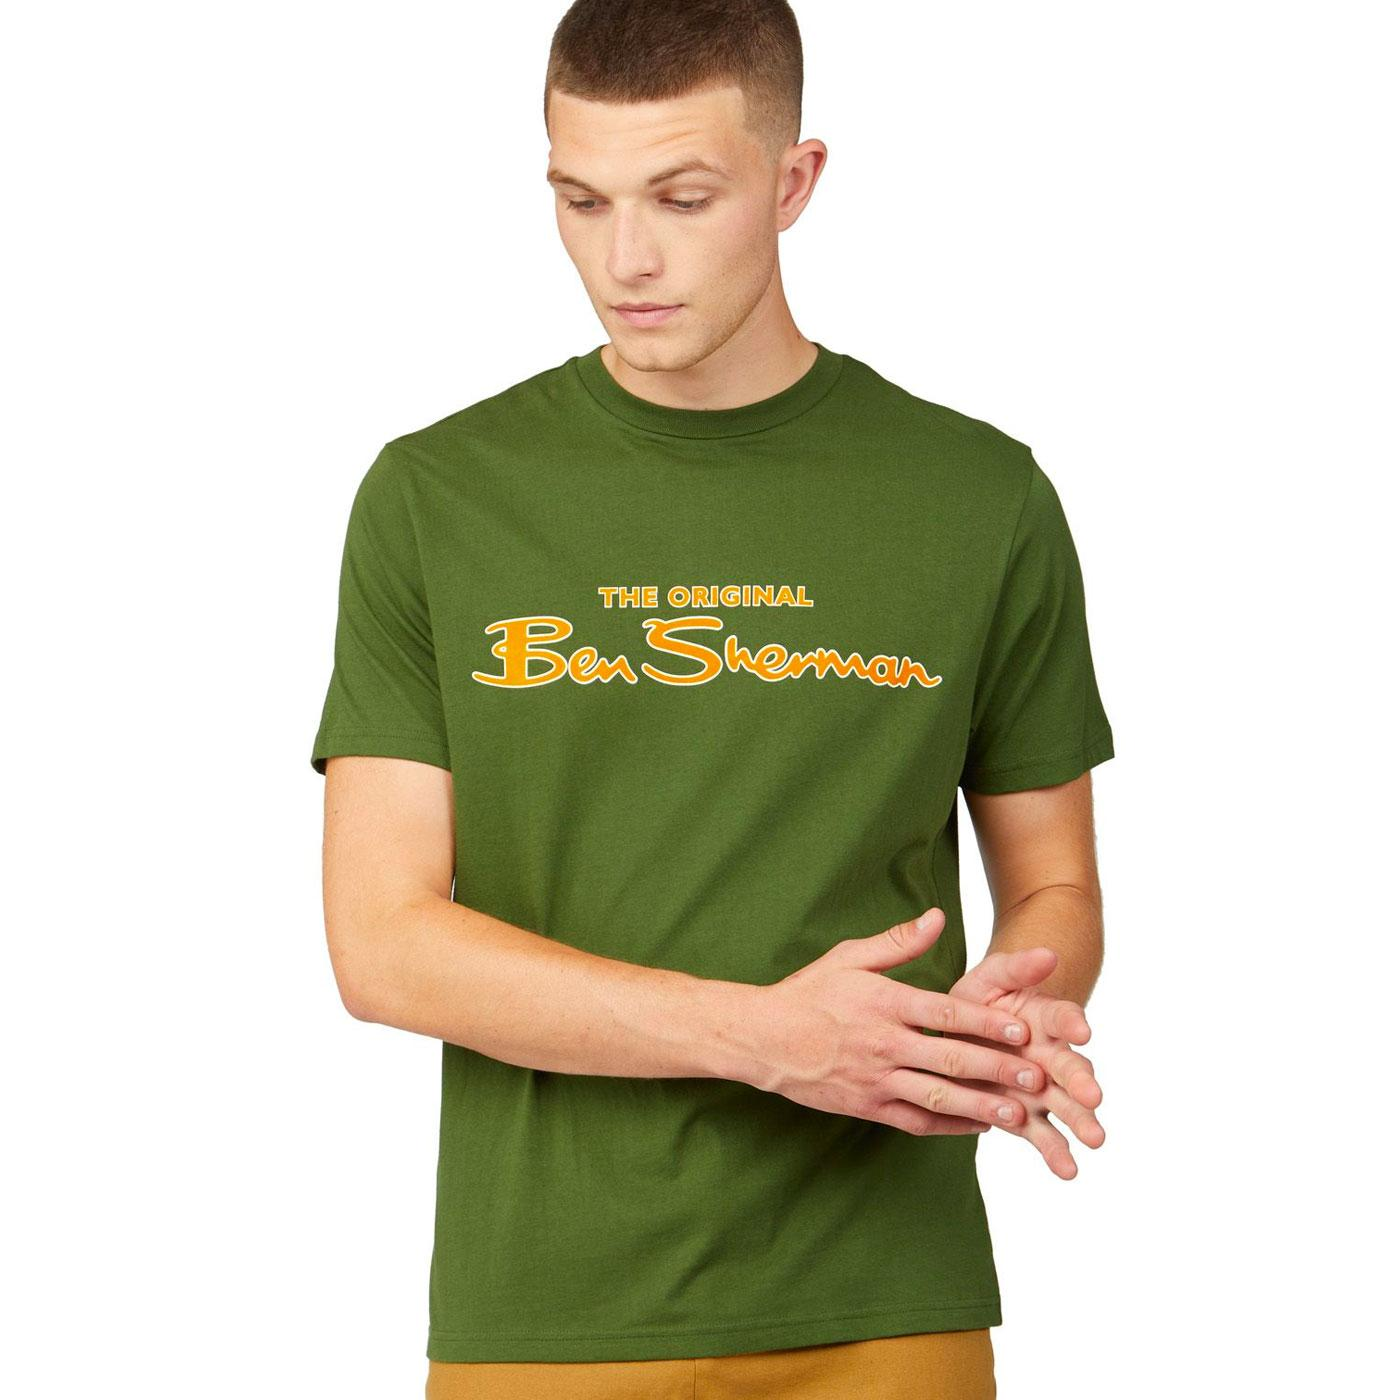 BEN SHERMAN Retro Signature Script T-shirt (Green)